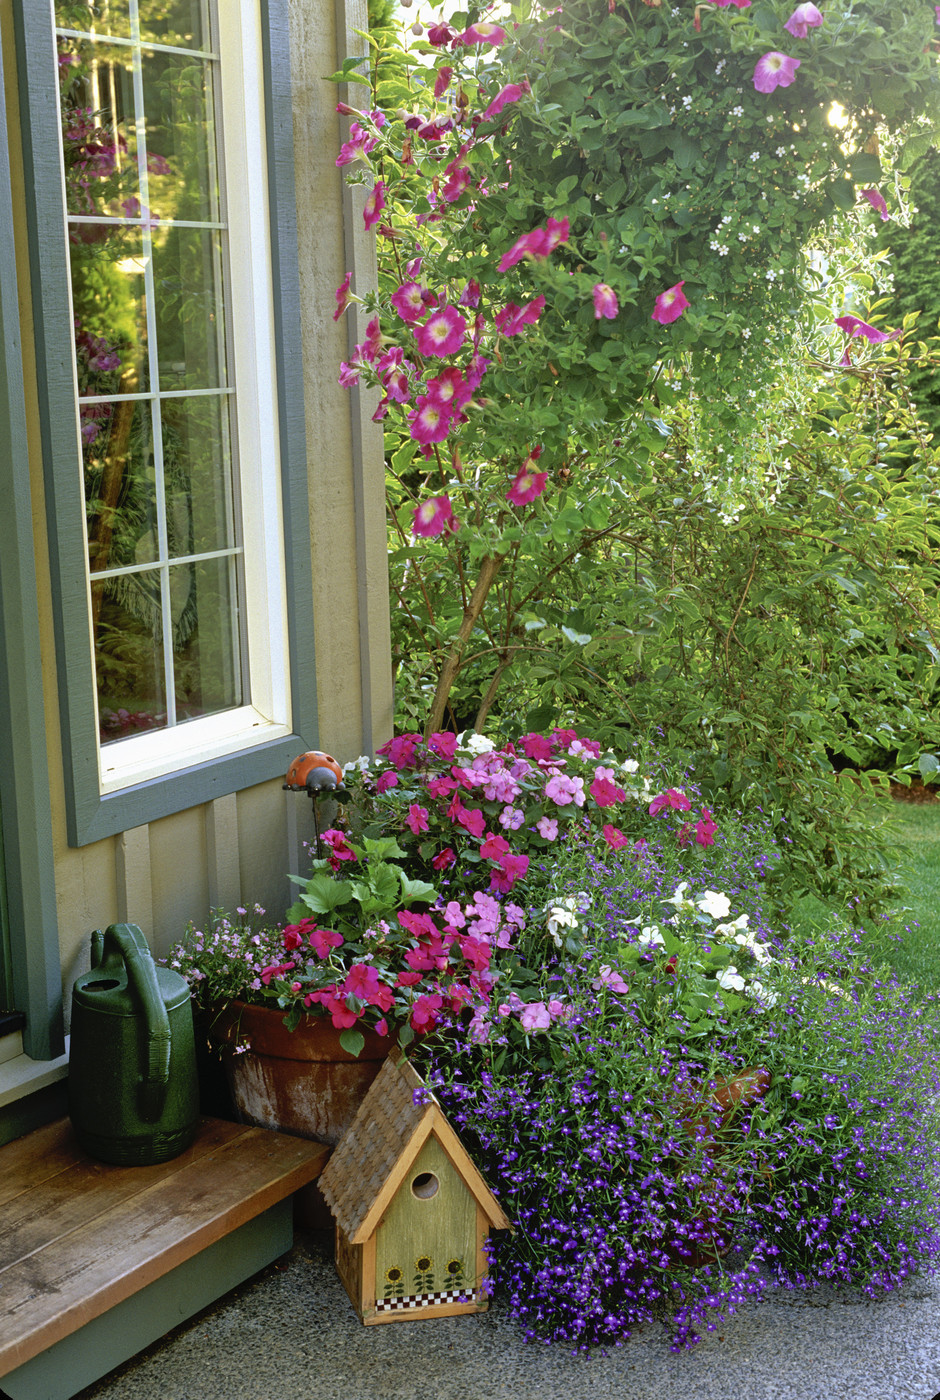 Hanging basket photos design ideas remodel and decor for Potted garden designs